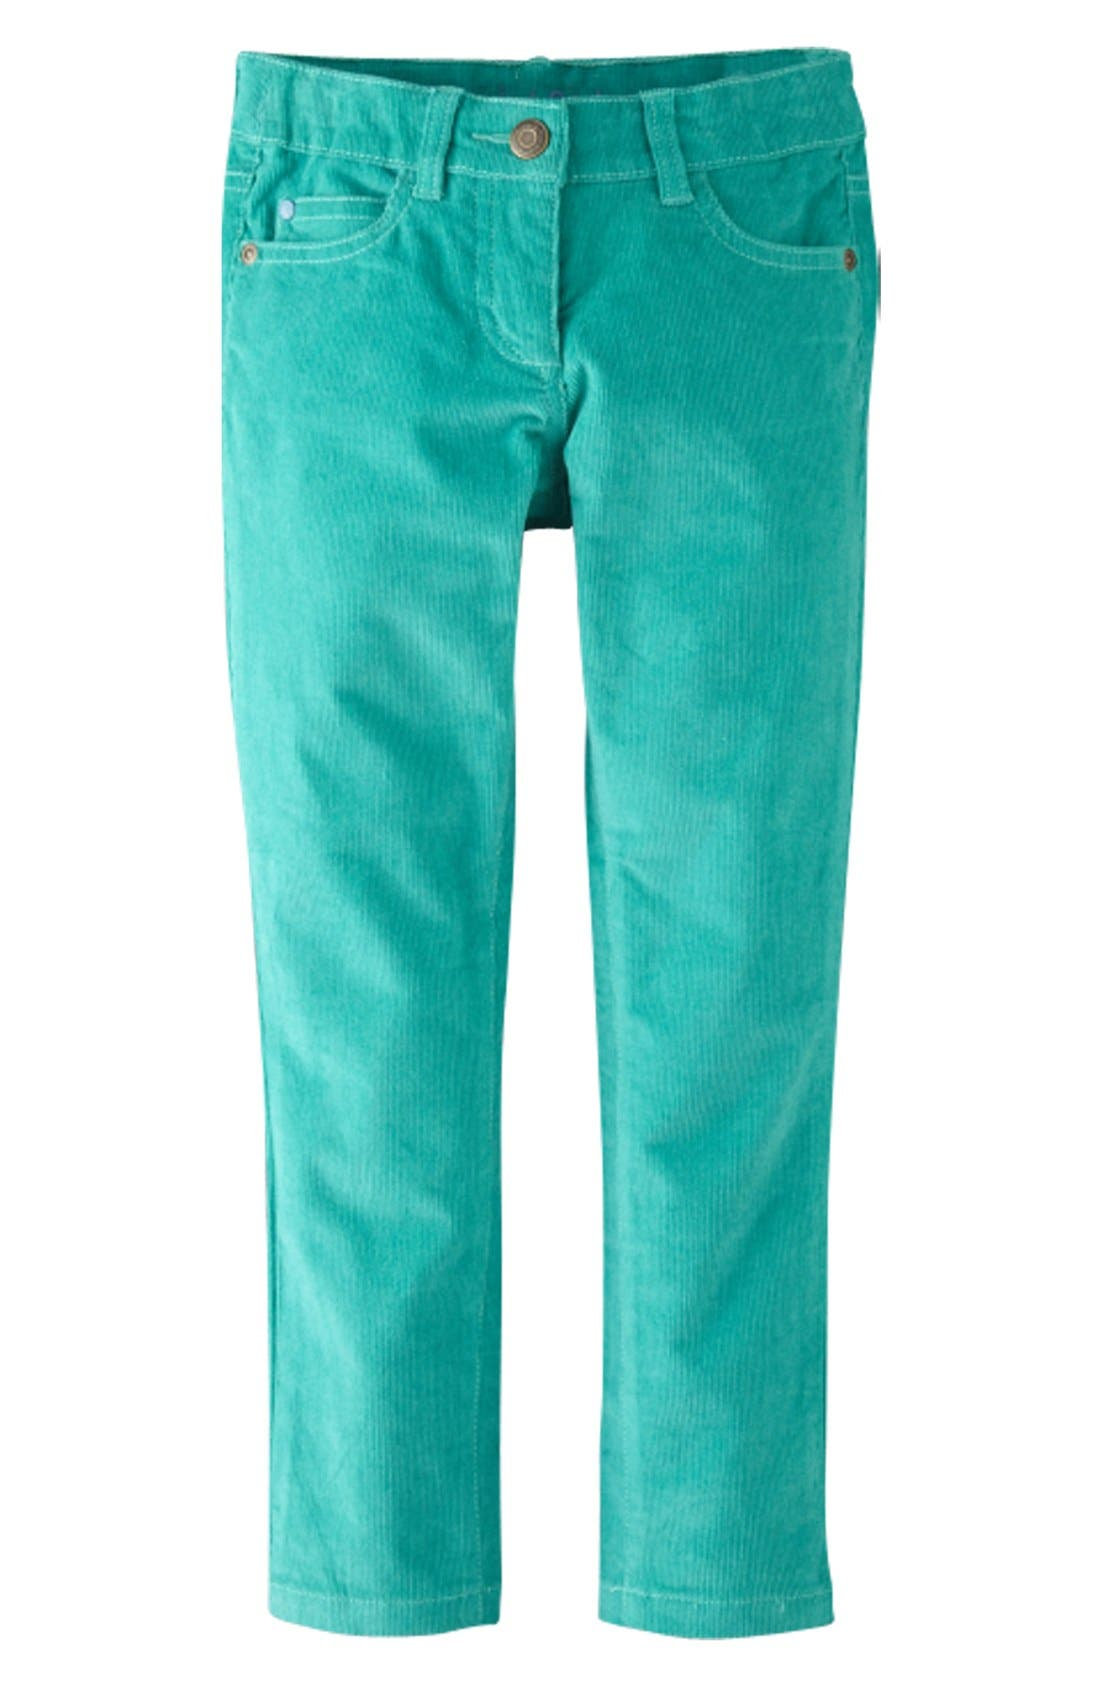 Alternate Image 1 Selected - Mini Boden Slim Fit Corduroy Pants (Toddler Girls, Little Girls & Big Girls)